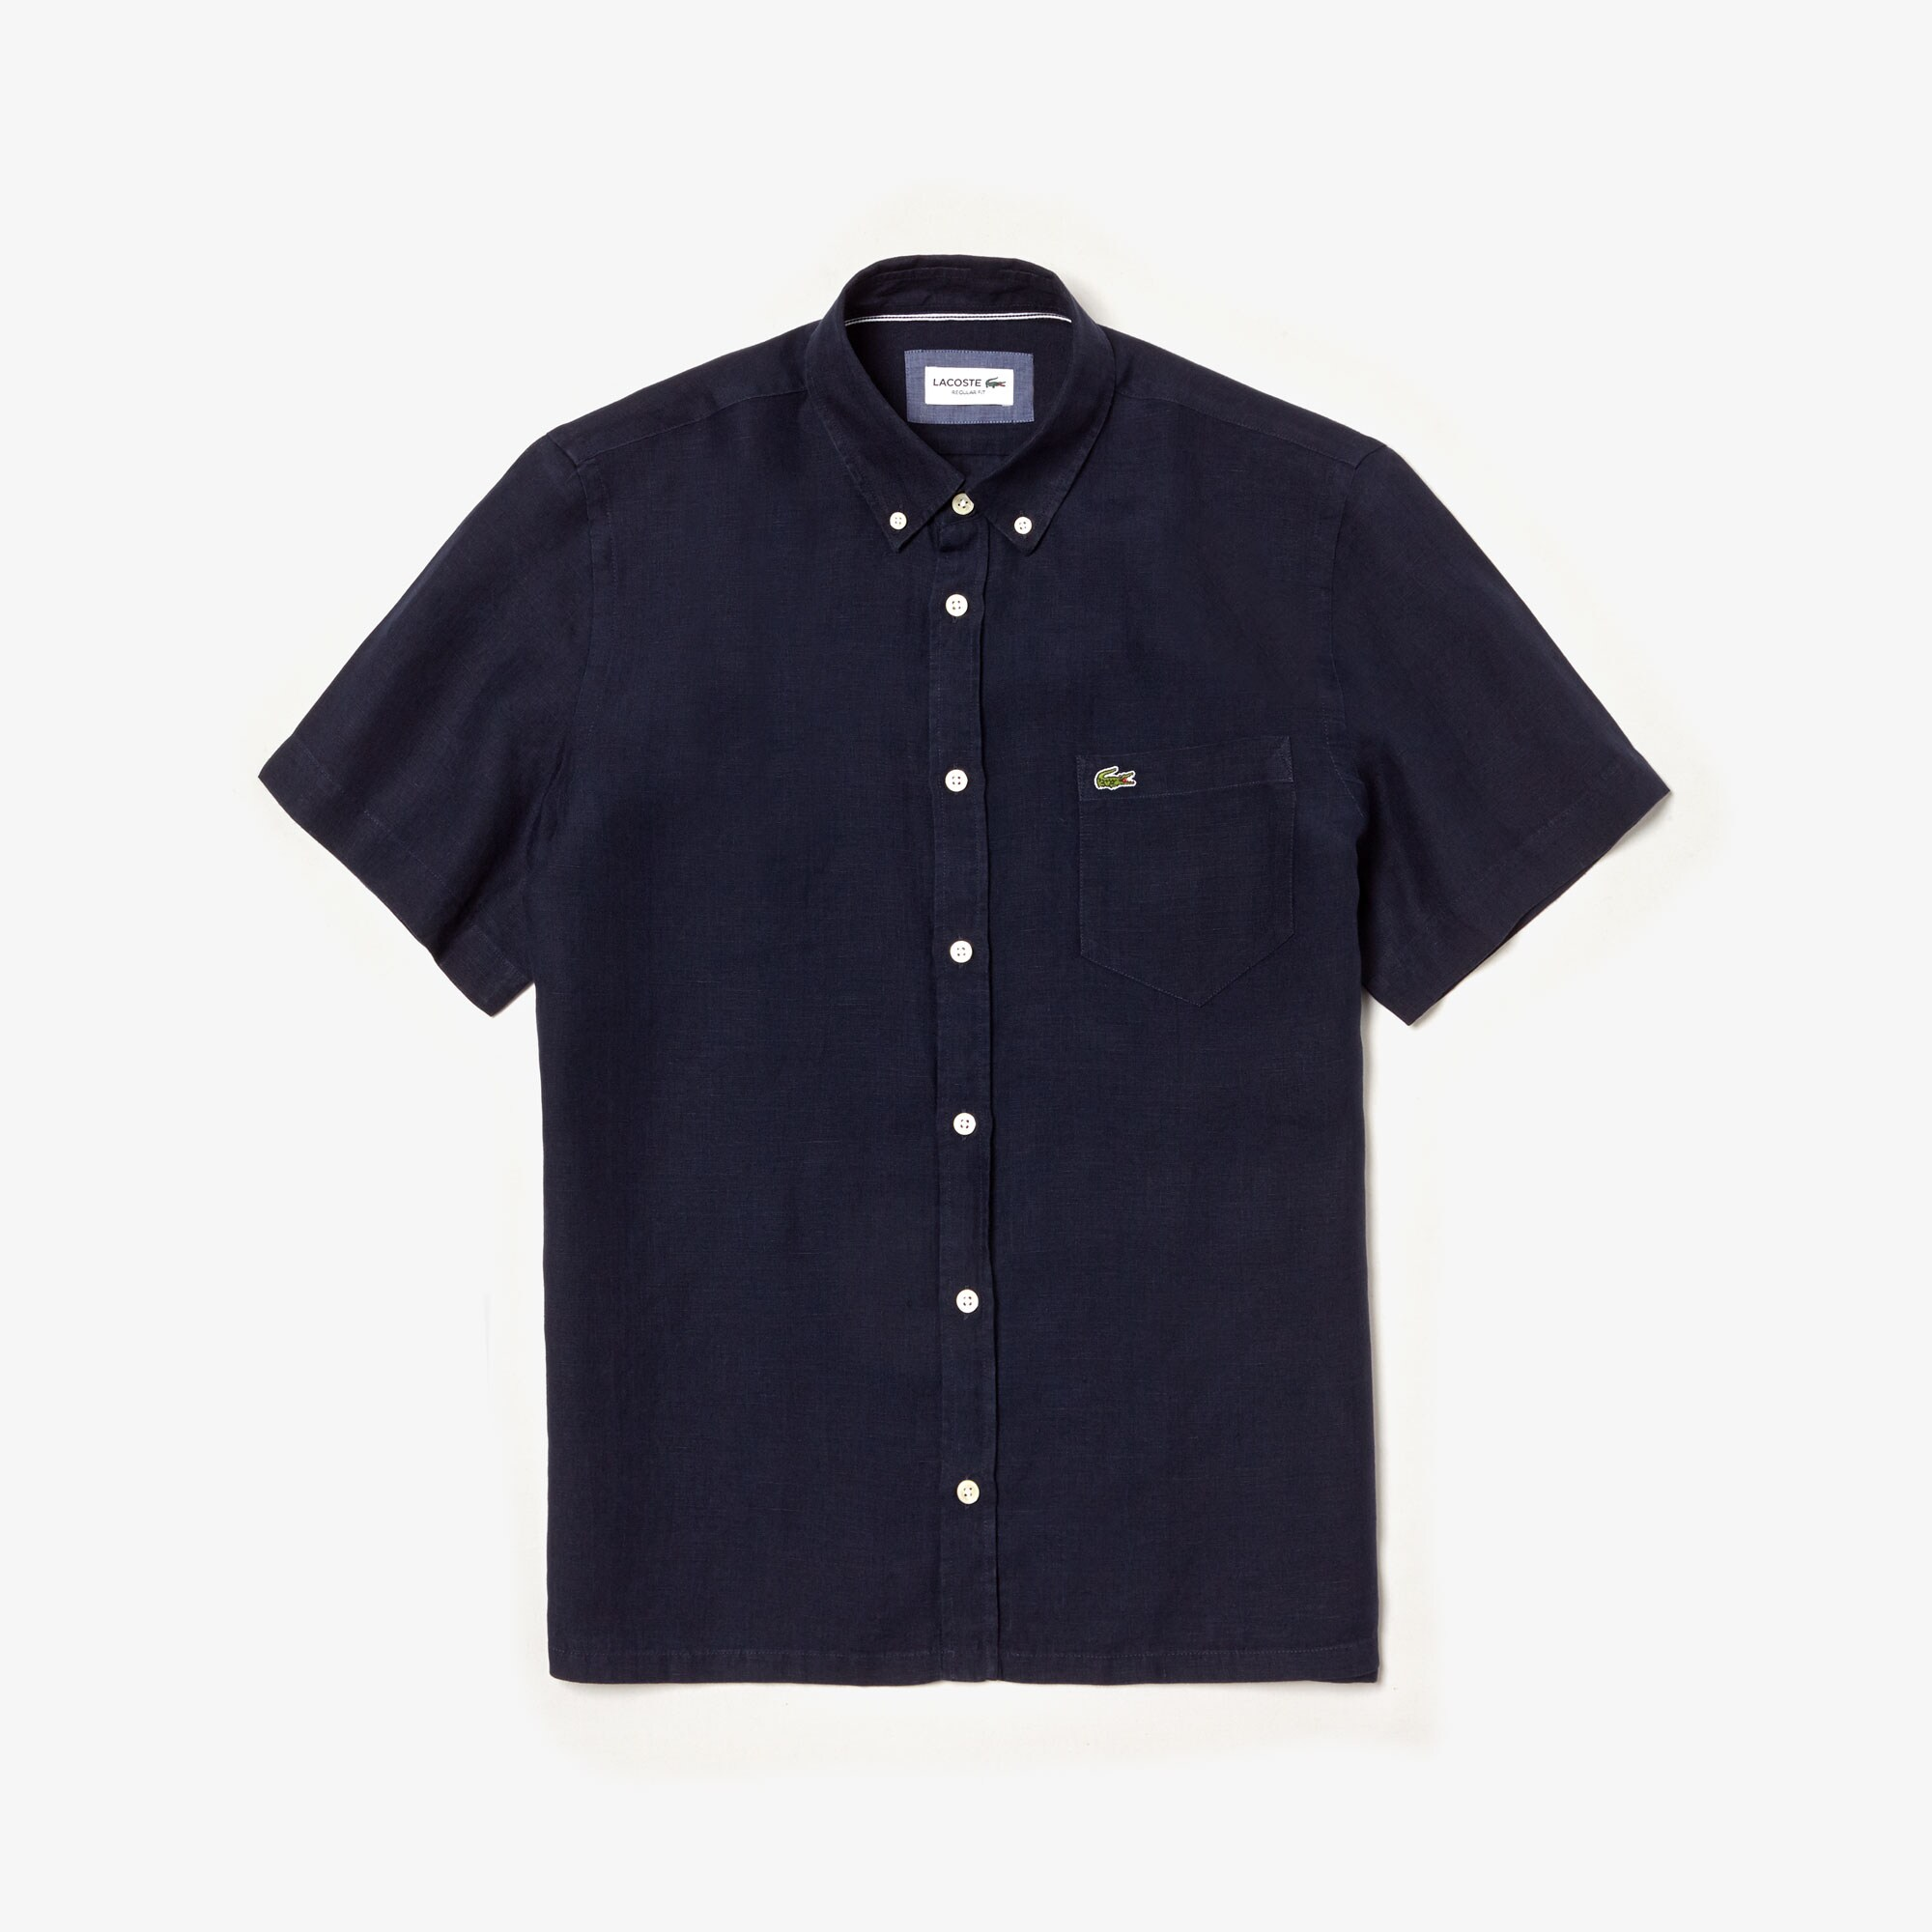 Lacoste - Camisa Lino - 3